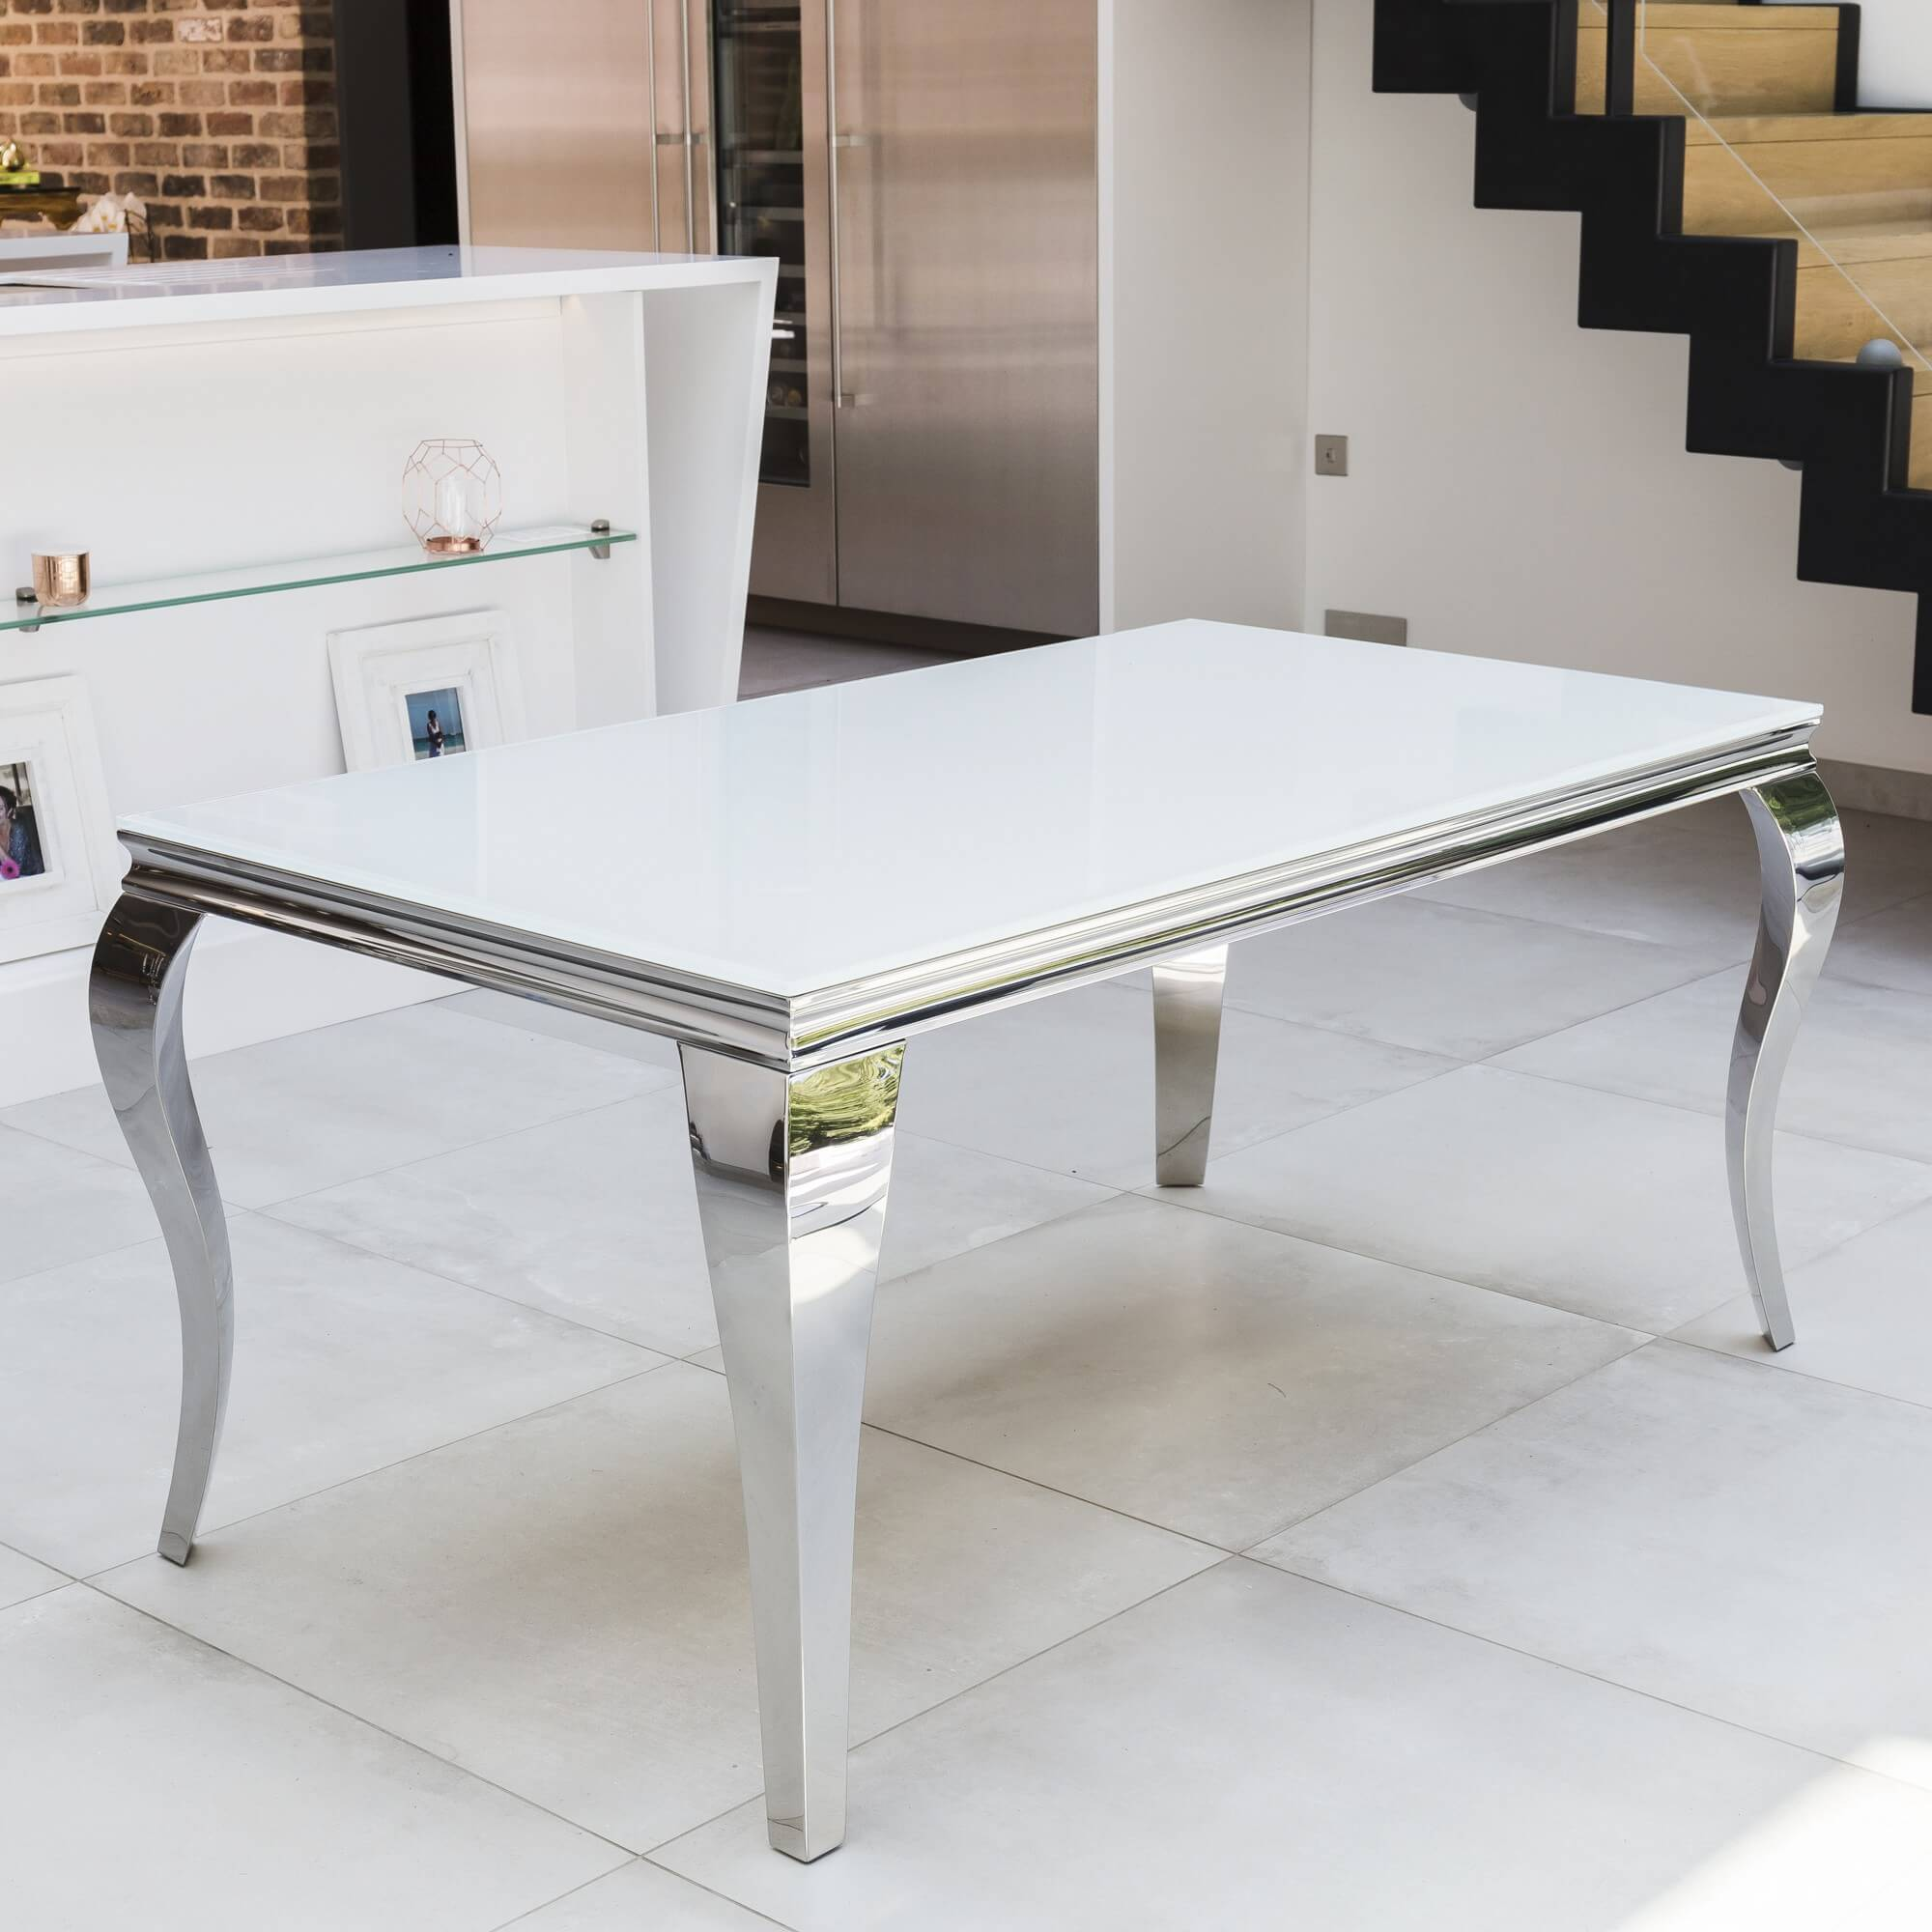 1.8m Louis Polished Stainless Steel Dining Table with White Glass